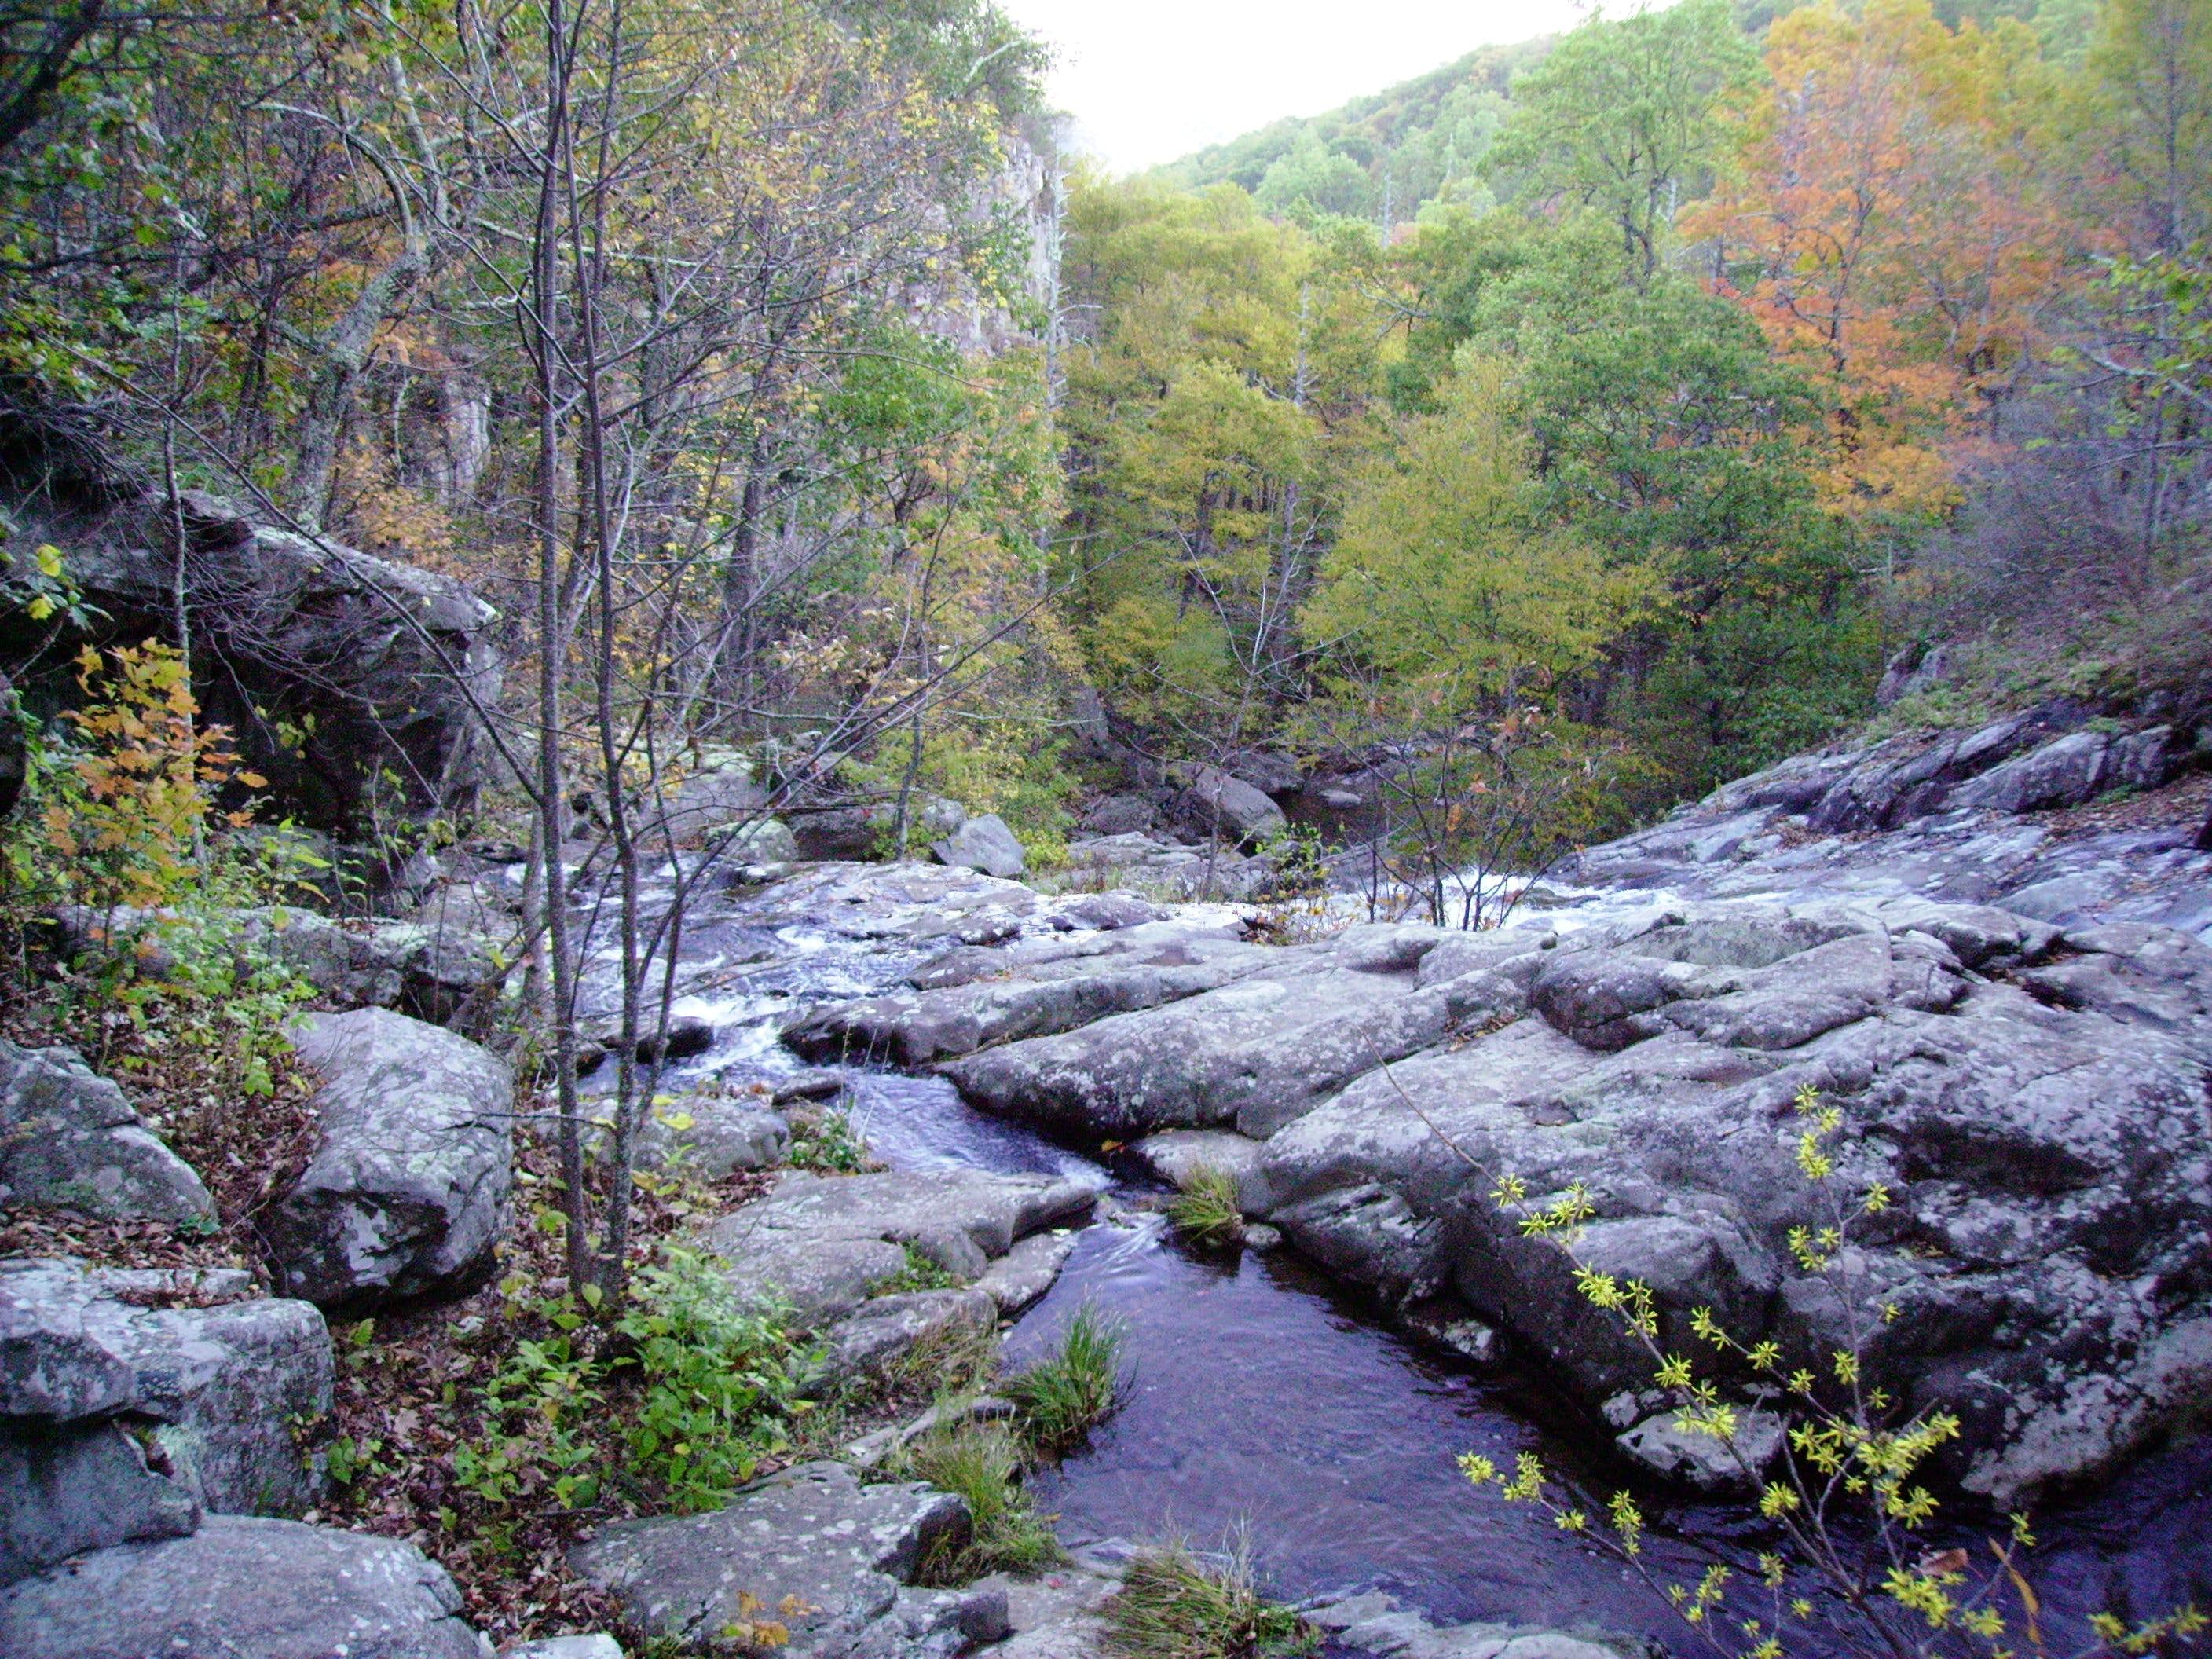 Whiteoak Canyon